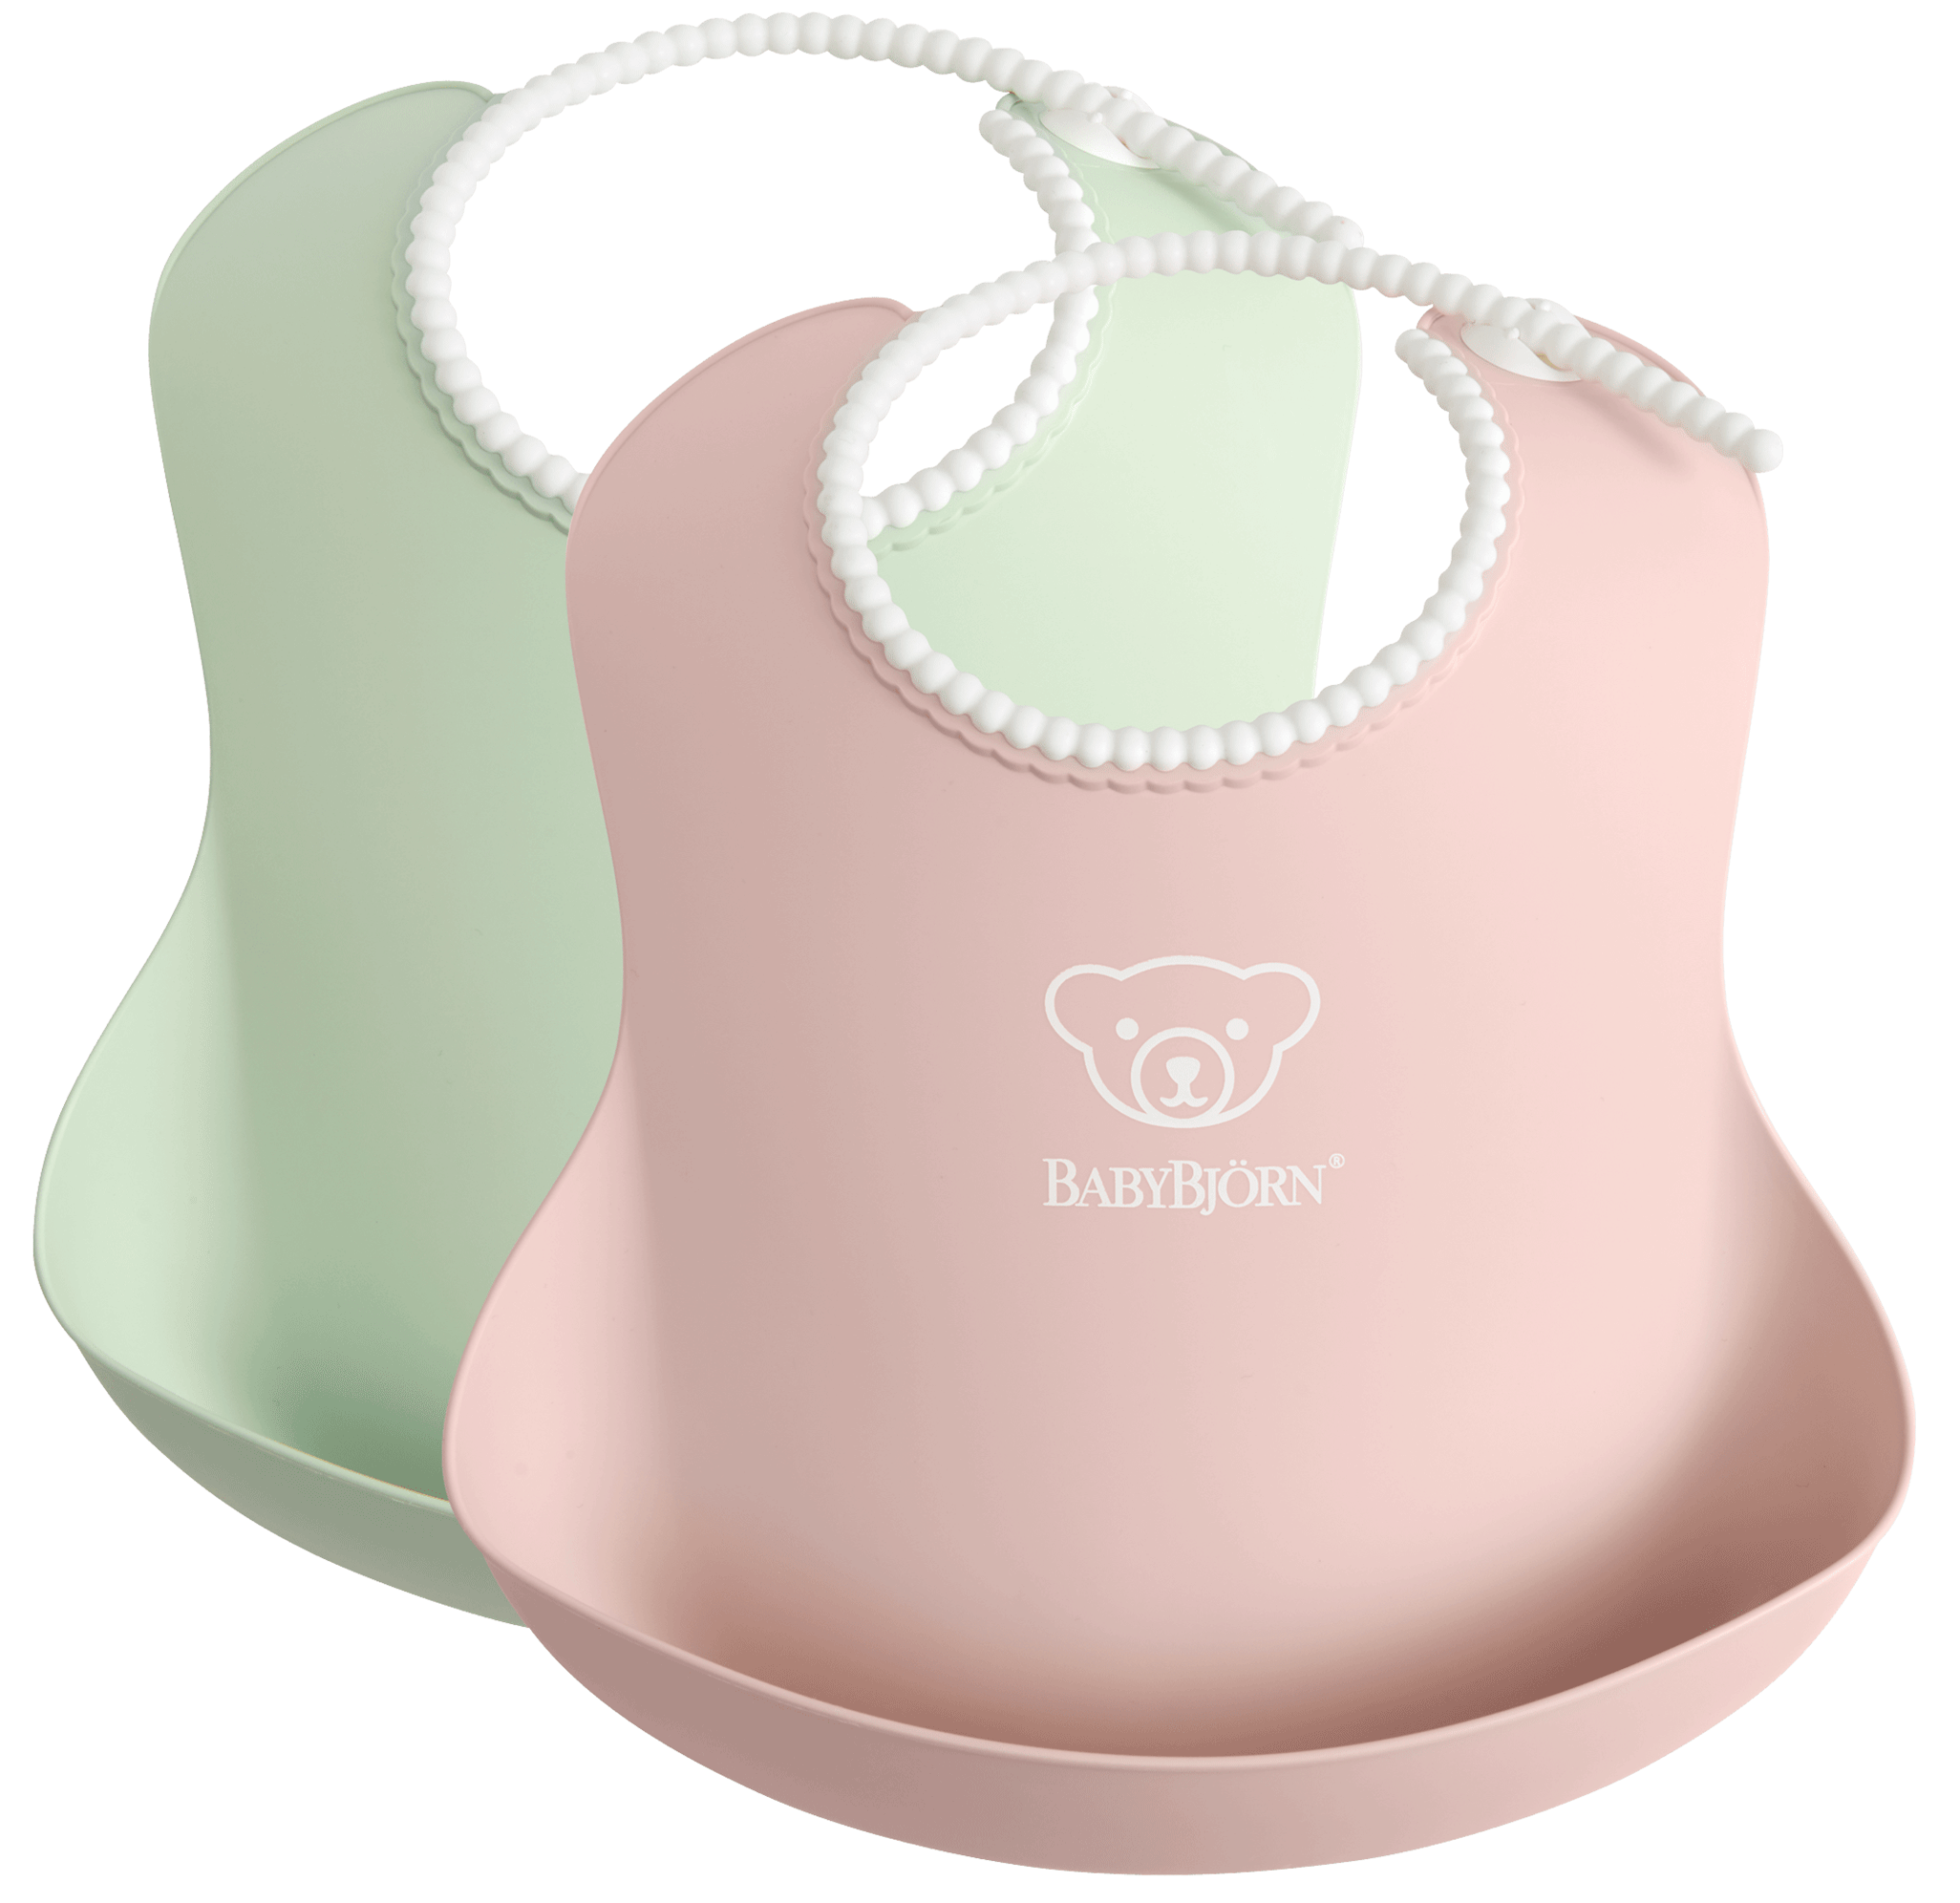 baby-bib-colour-powder-green-pink-BABYBJÖRN